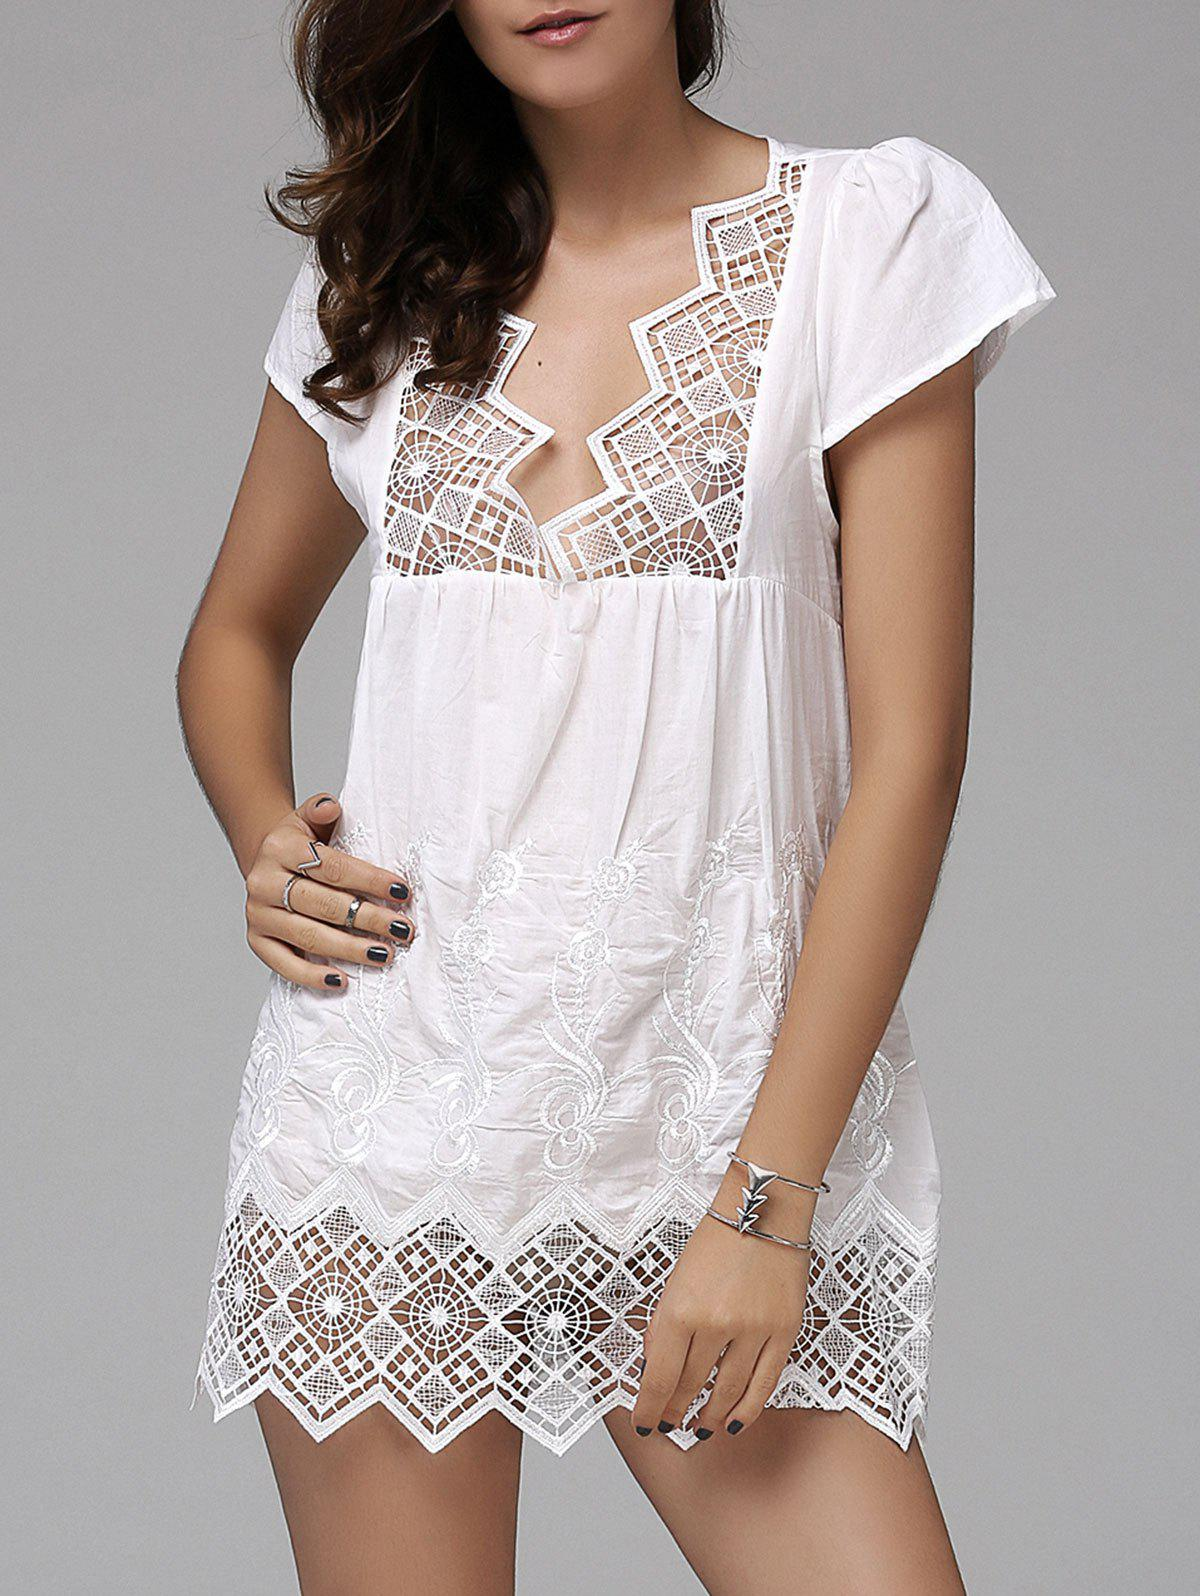 Fashionable Women's Plunging Neck Short Sleeve Crochet Top - WHITE S